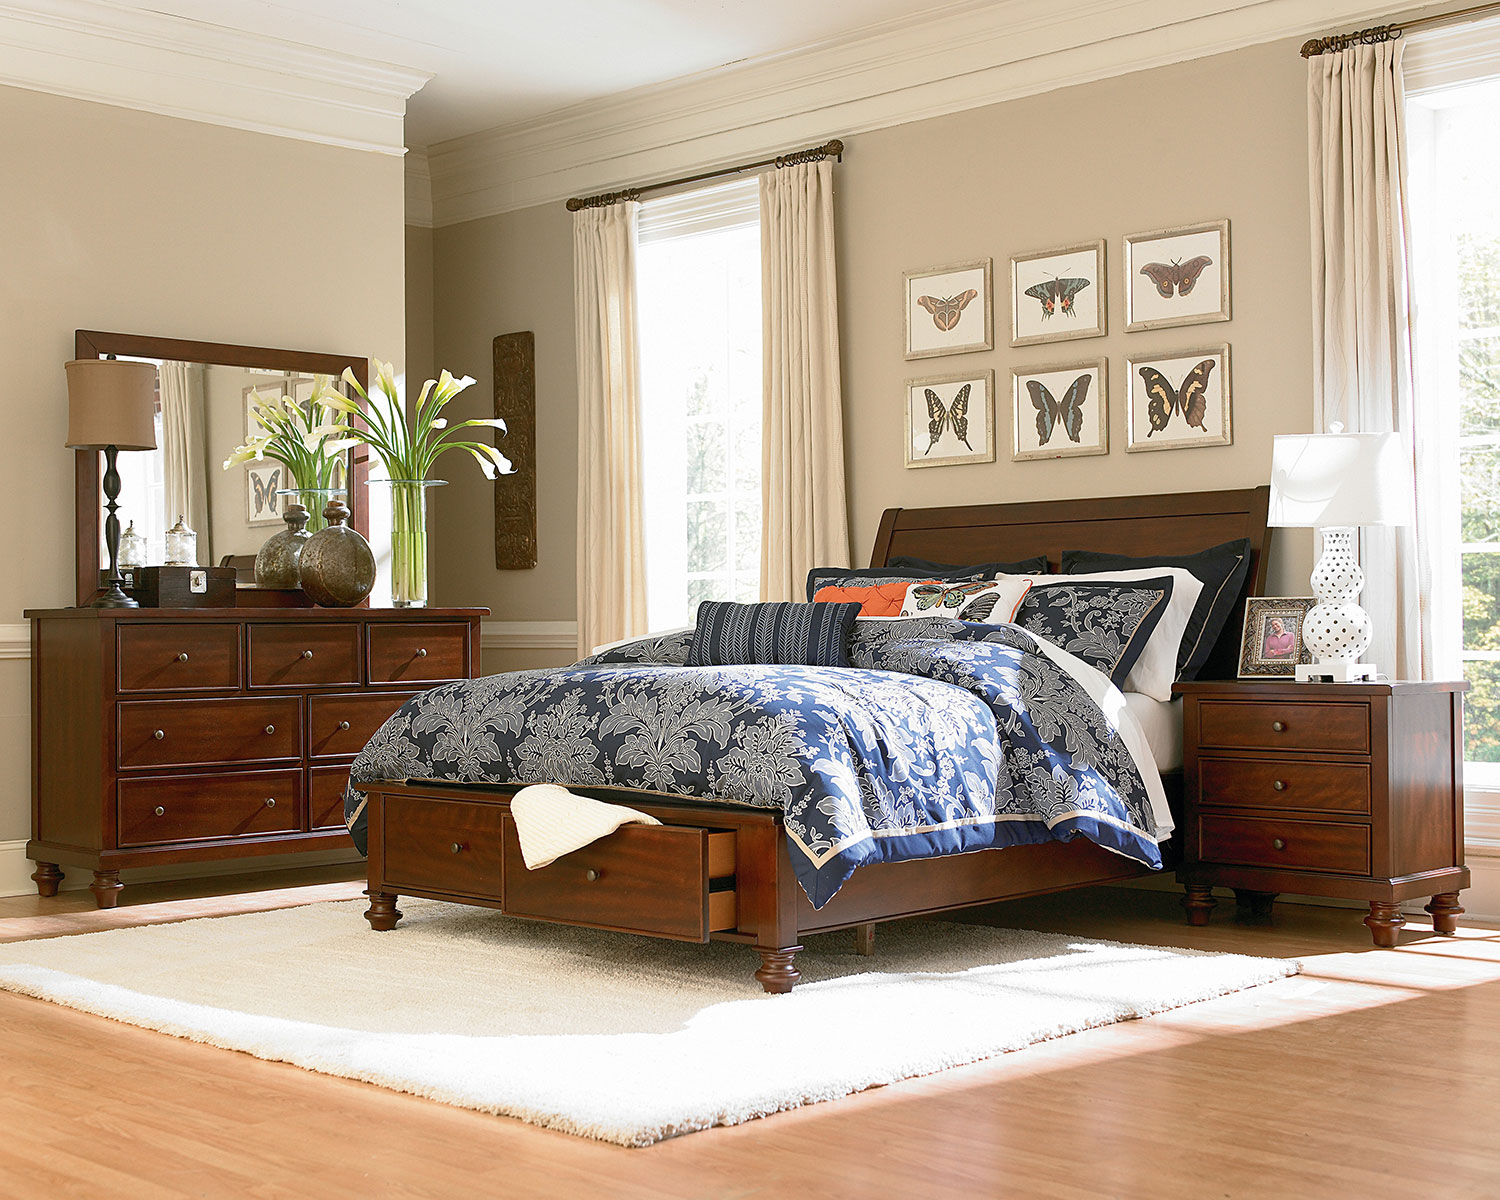 Levin Furniture Bedroom Set Marvelous Amazing Levin Bedroom Sets Levin Bedroom Sets Kbdphoto